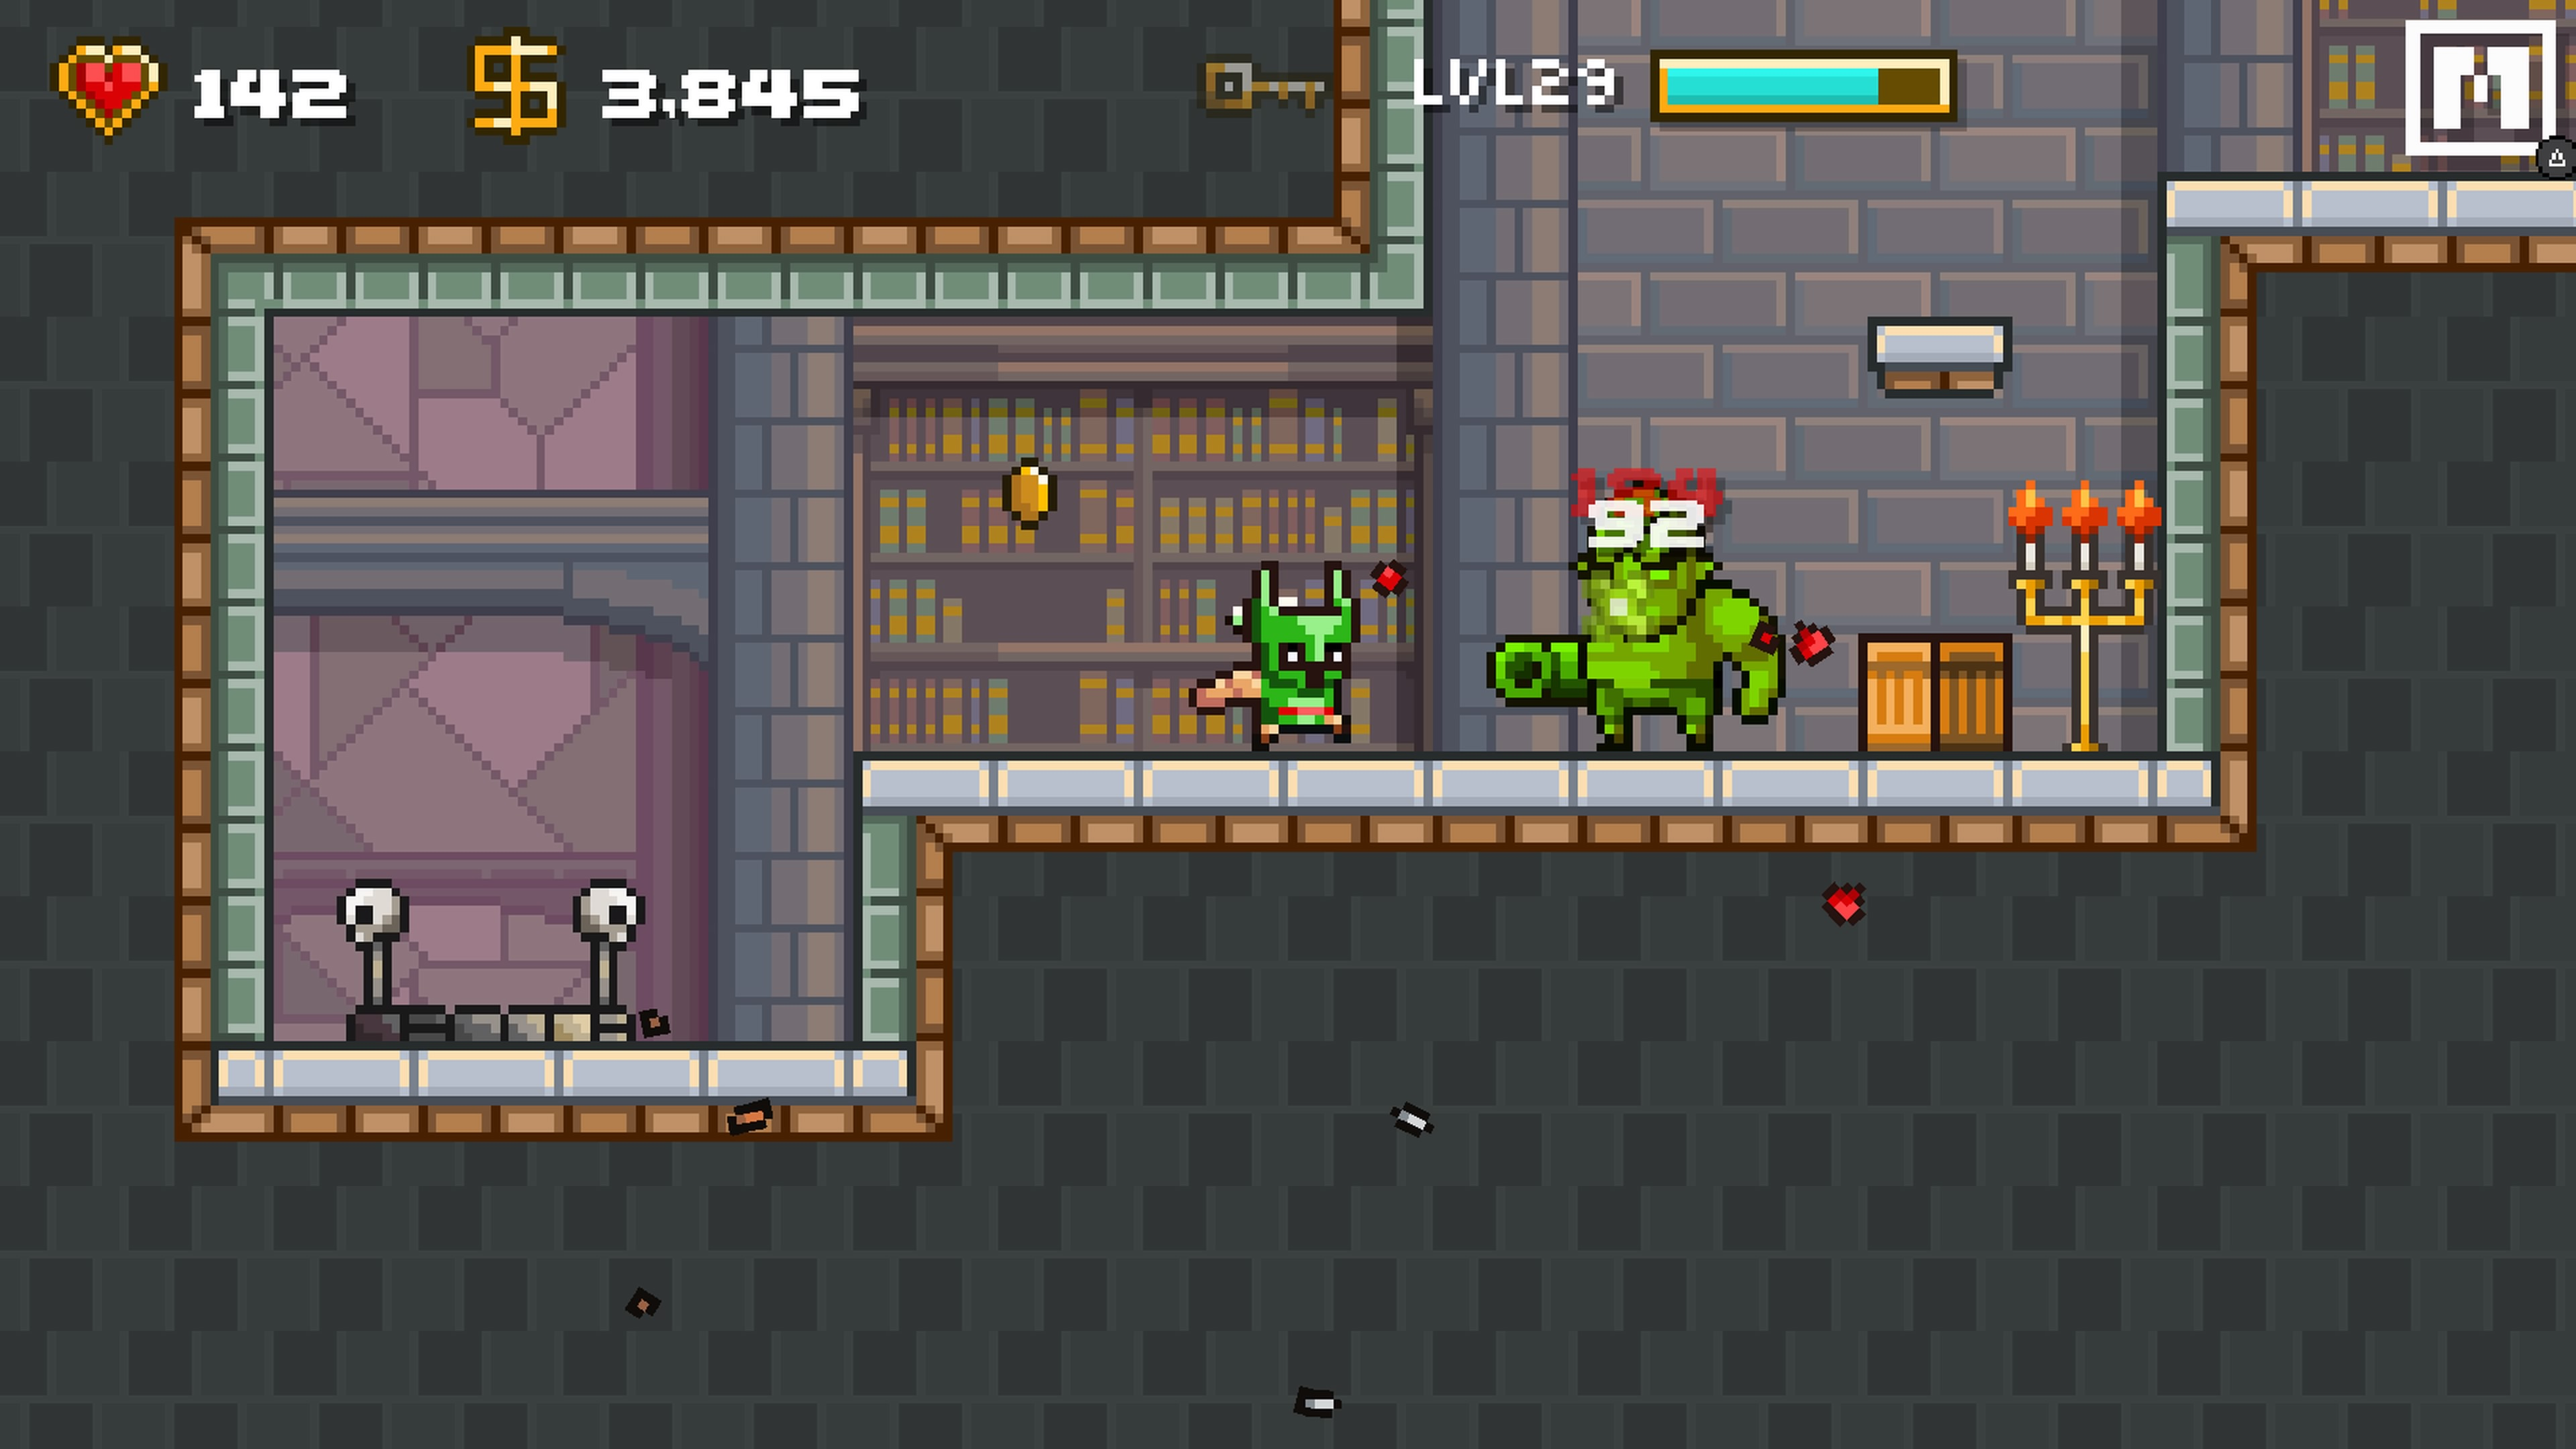 Devious Dungeon 2 - PS4/Vita Review - PlayStation Country